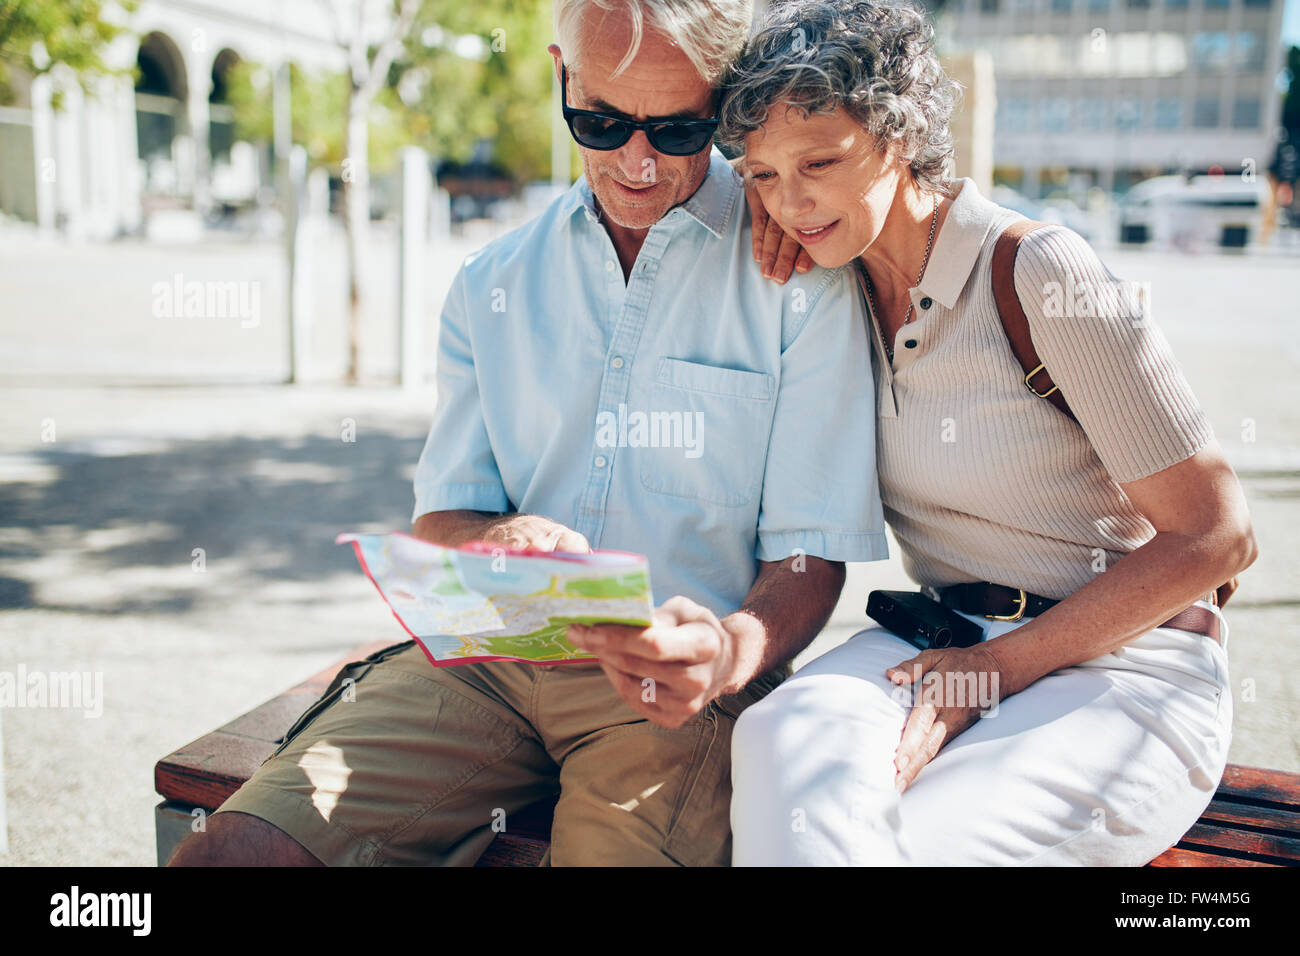 Senior couple looking for destination on a city map. Two active seniors reading a map together while sitting outdoors - Stock Image